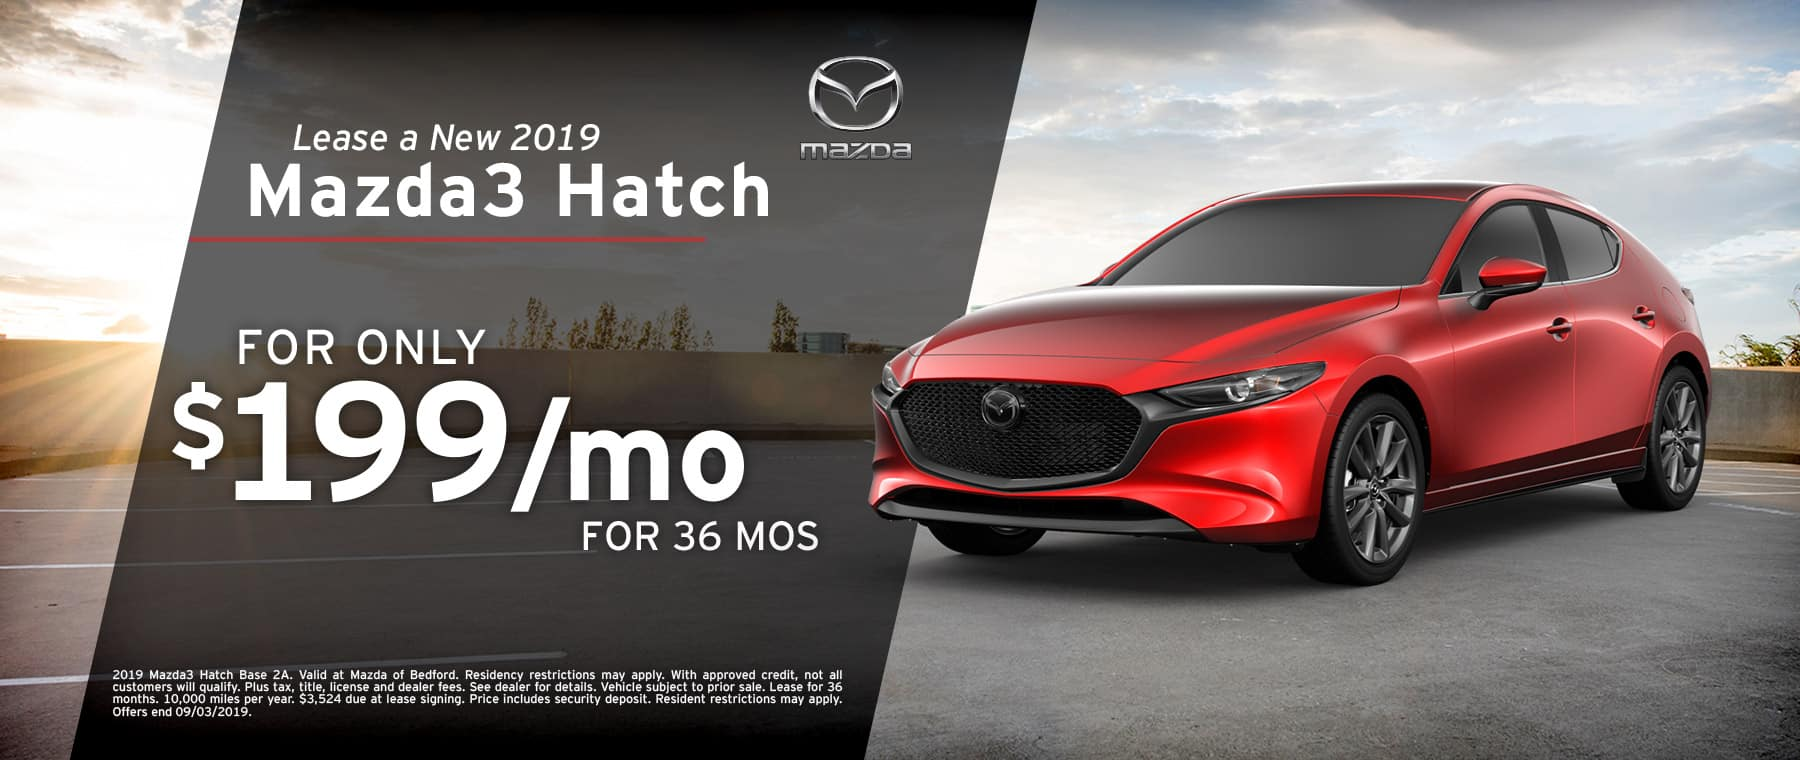 2019 Mazda3 Hatchback at Mazda of Bedford